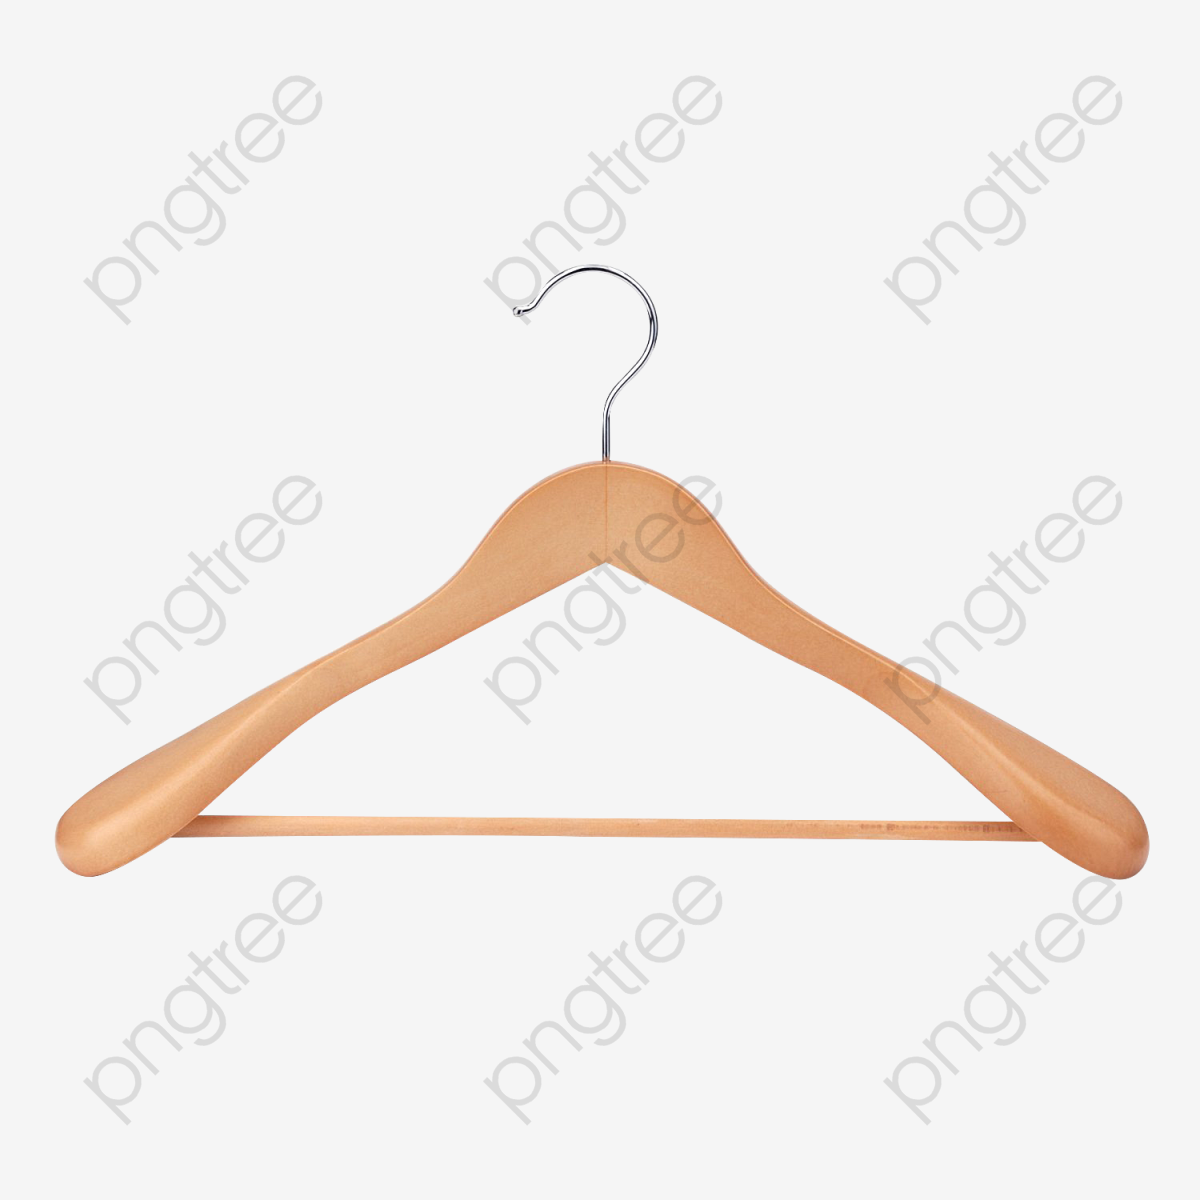 Free clipart of legs supporting something. Solid wood yellow clothes